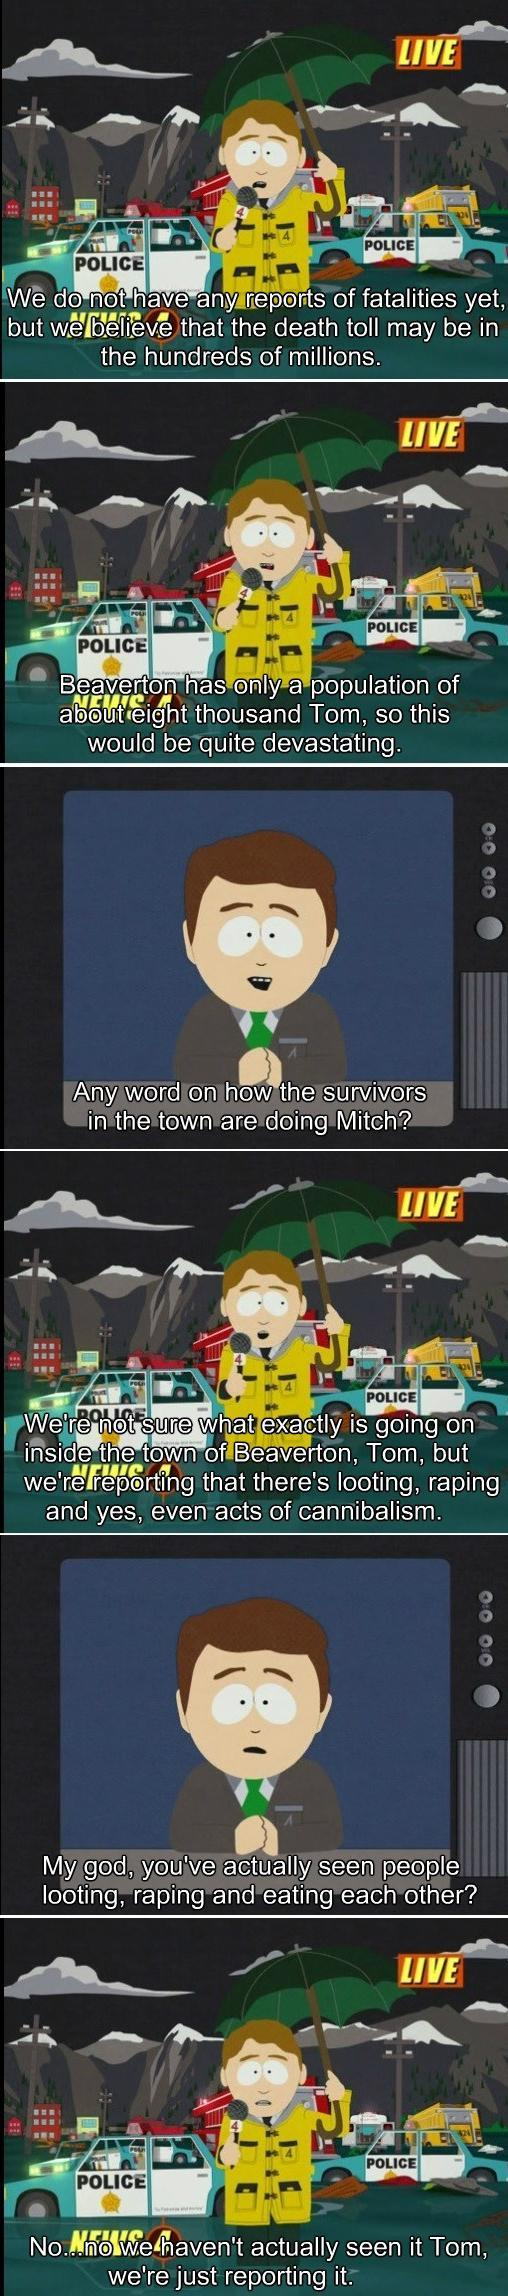 South Parks accurate depiction of broadcast journalism